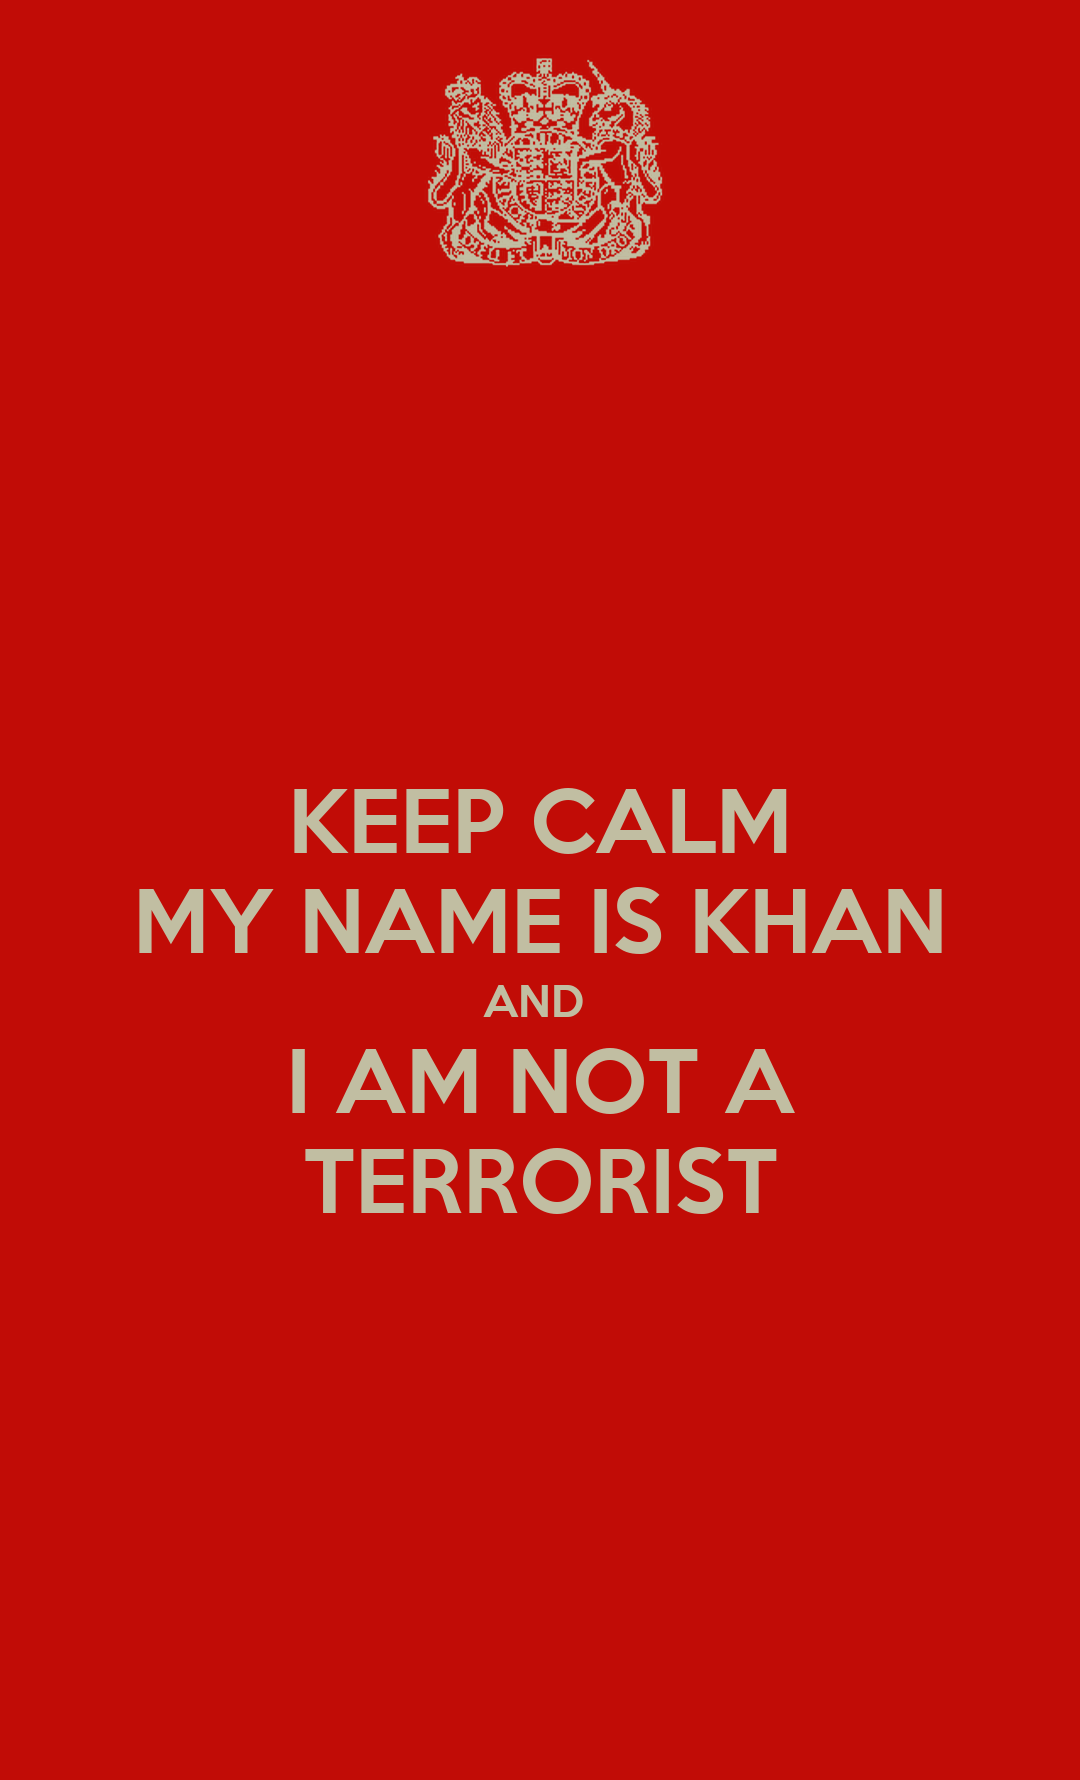 KEEP CALM MY NAME IS KHAN AND I AM NOT A TERRORIST Poster ...  My Name Is Khan Poster